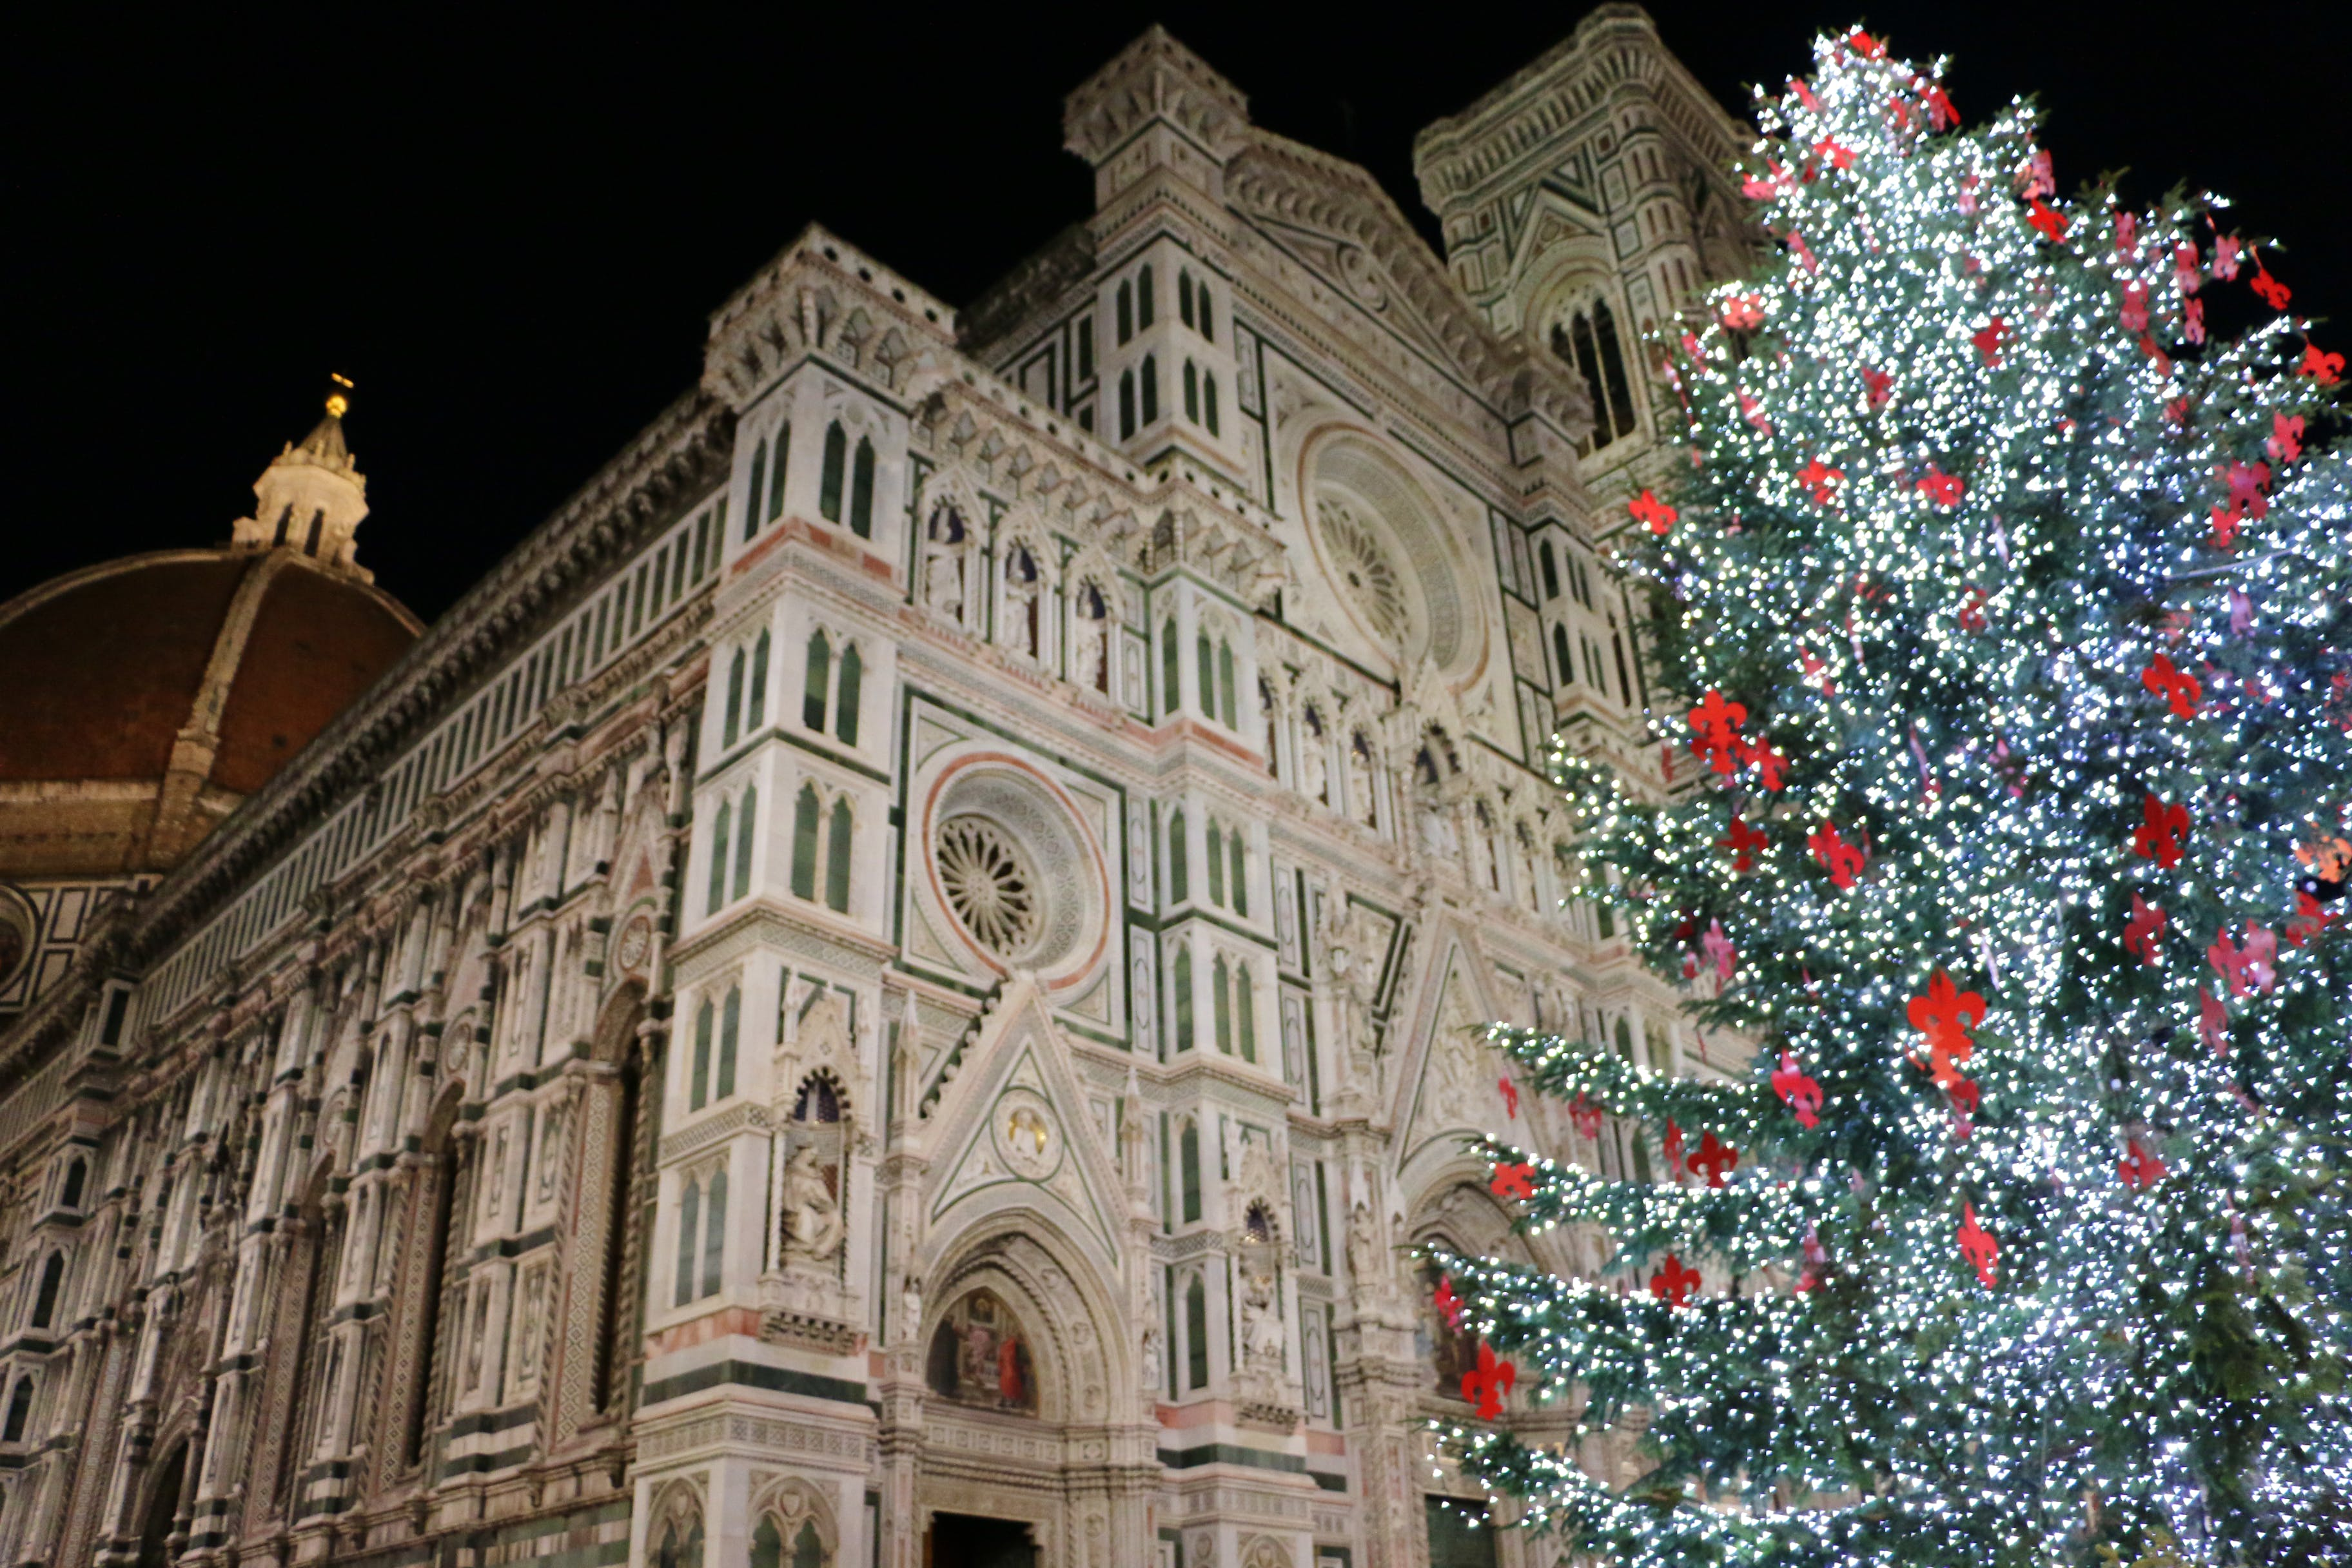 Florence Calendar Of Events December 2019 Events in December in Tuscany: Christmas, Culture and Food